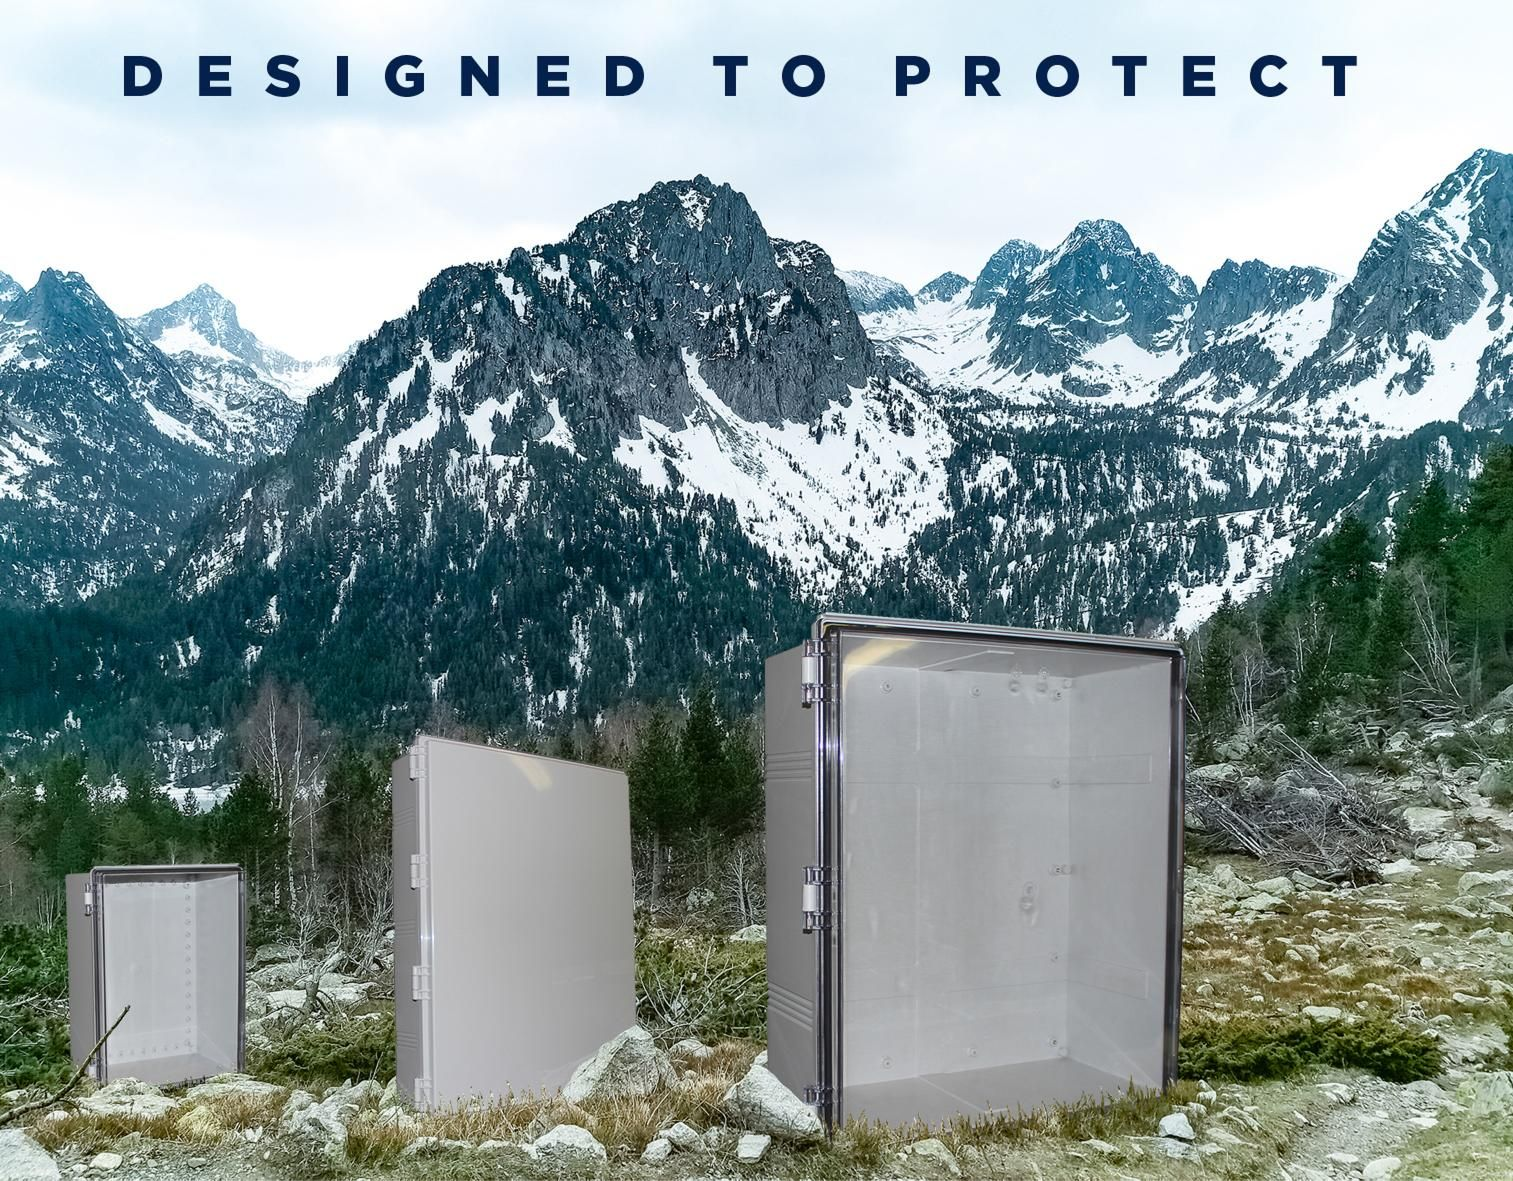 CamdenBoss presents the X Series electrical and electronic enclosures